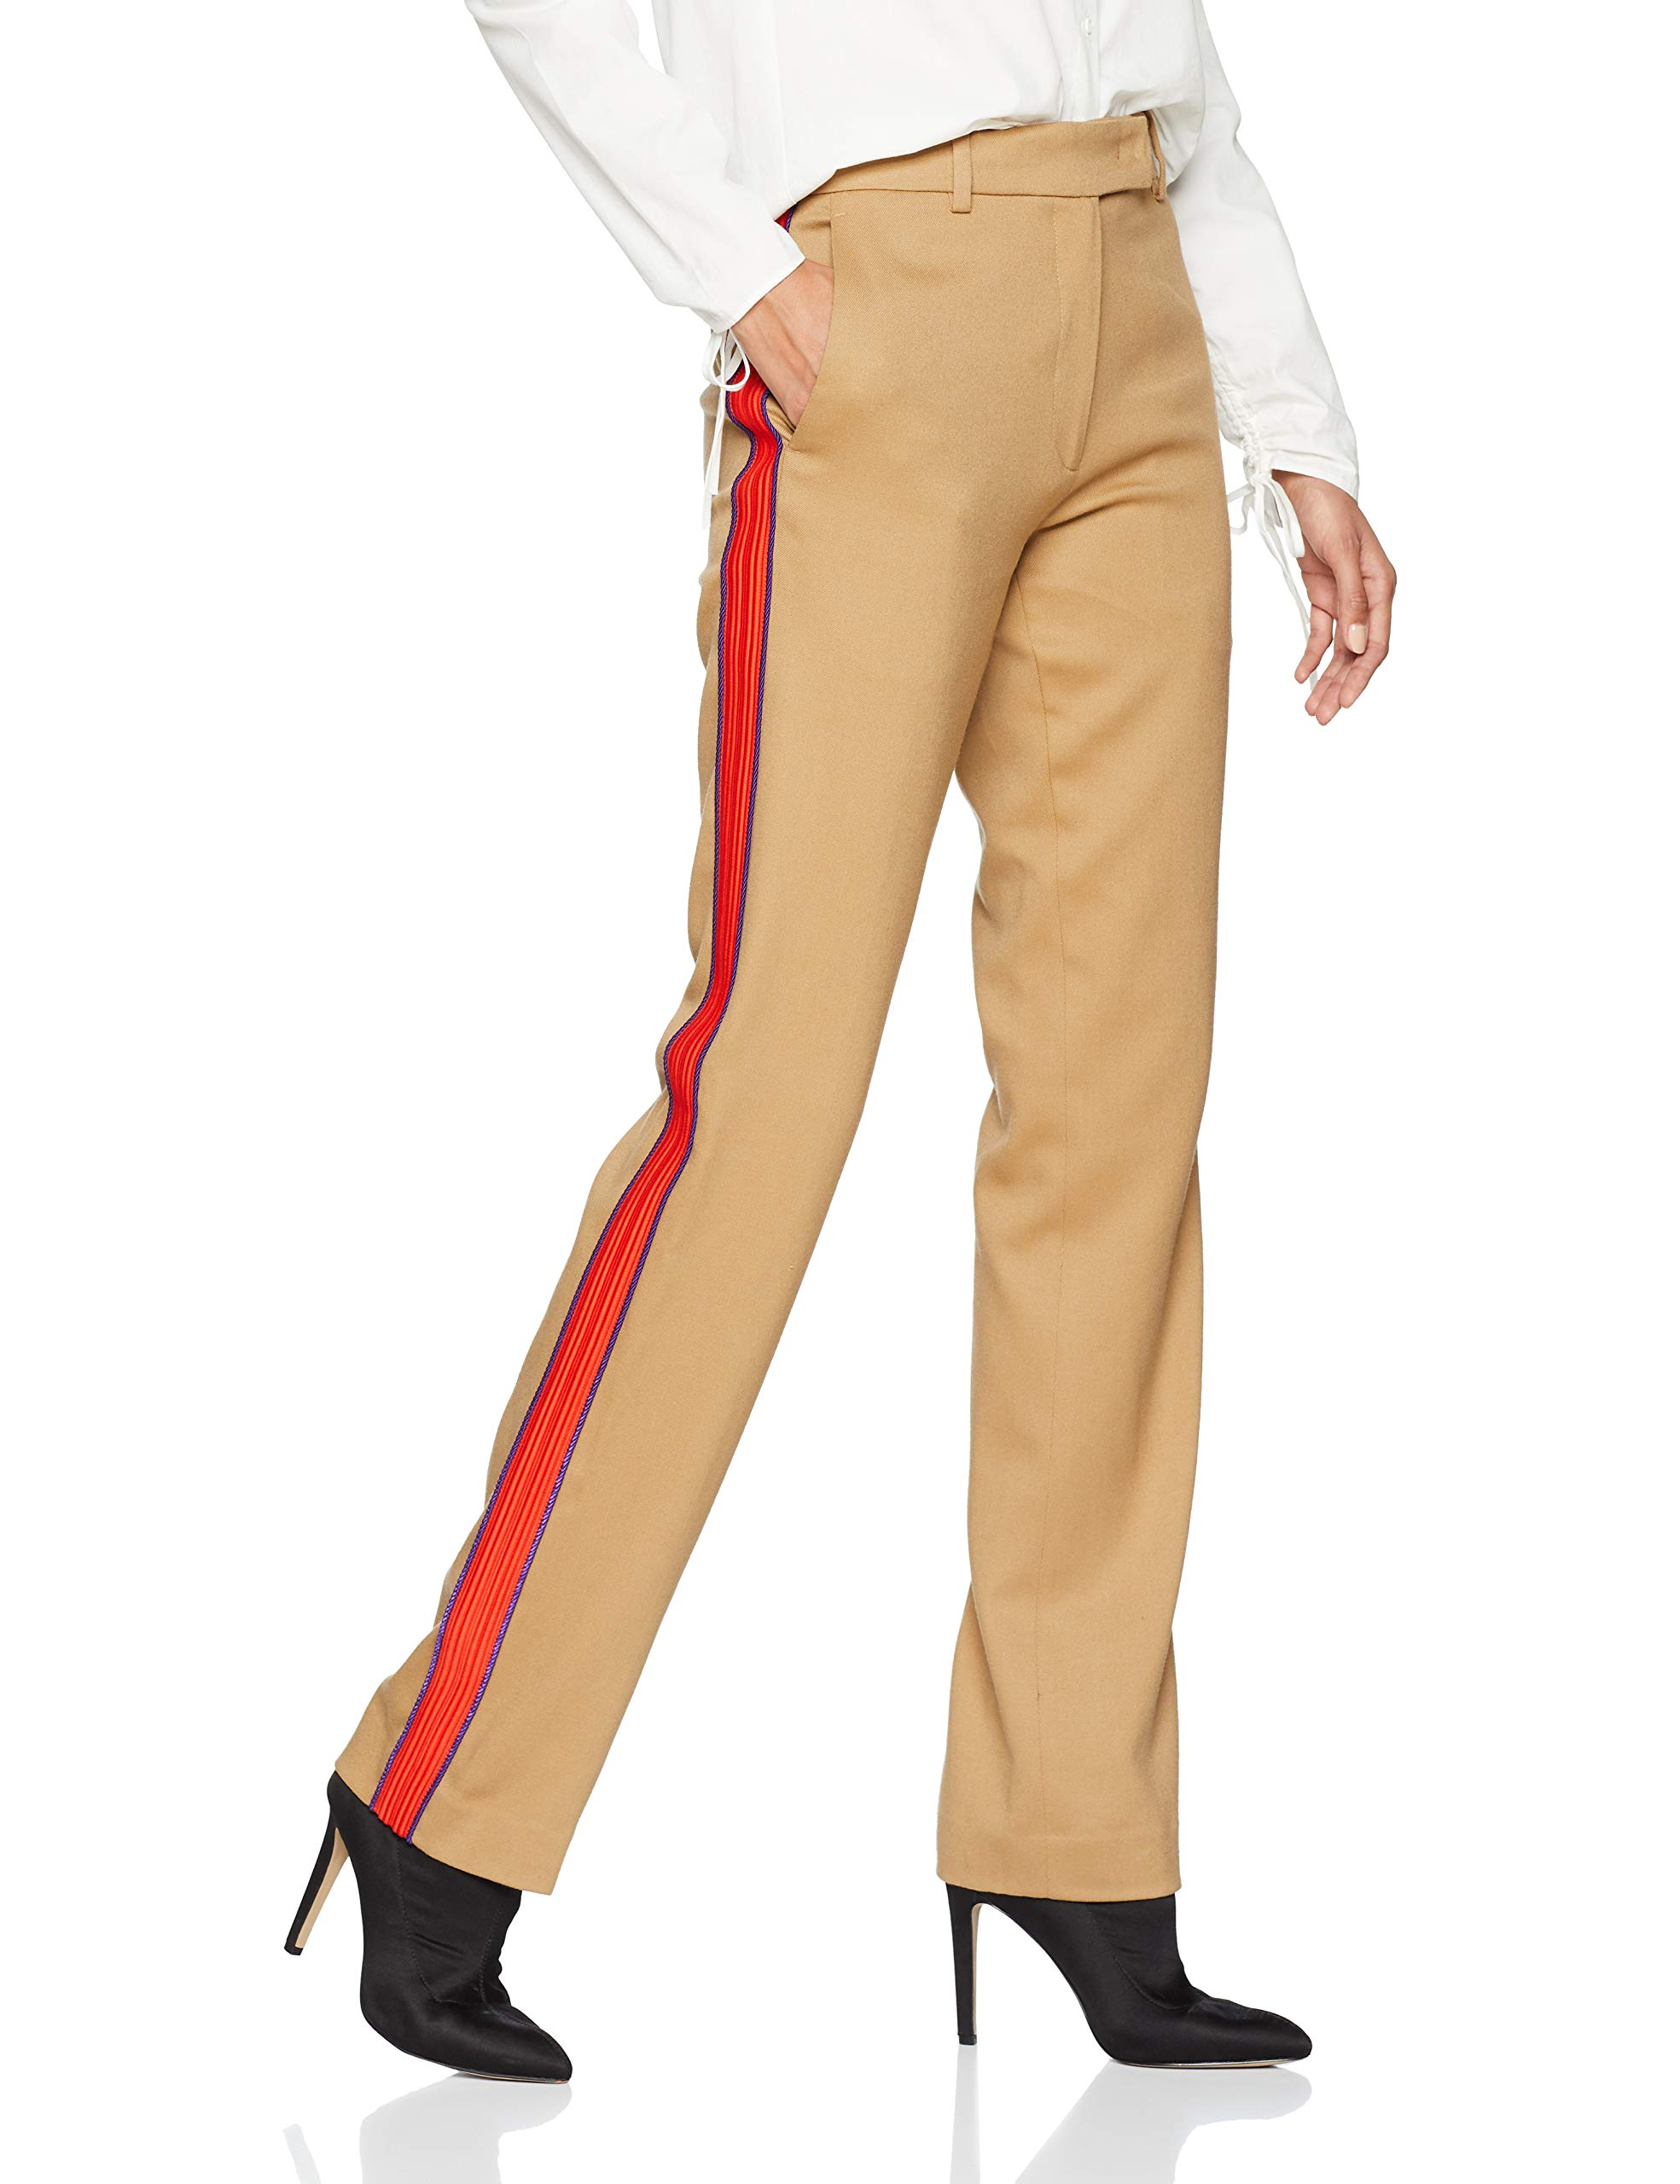 Du Pinko taille 46Femme Flanellabeige C9844 Ermanno Tannino Pantalone Fr Fabricante 80OwPkn